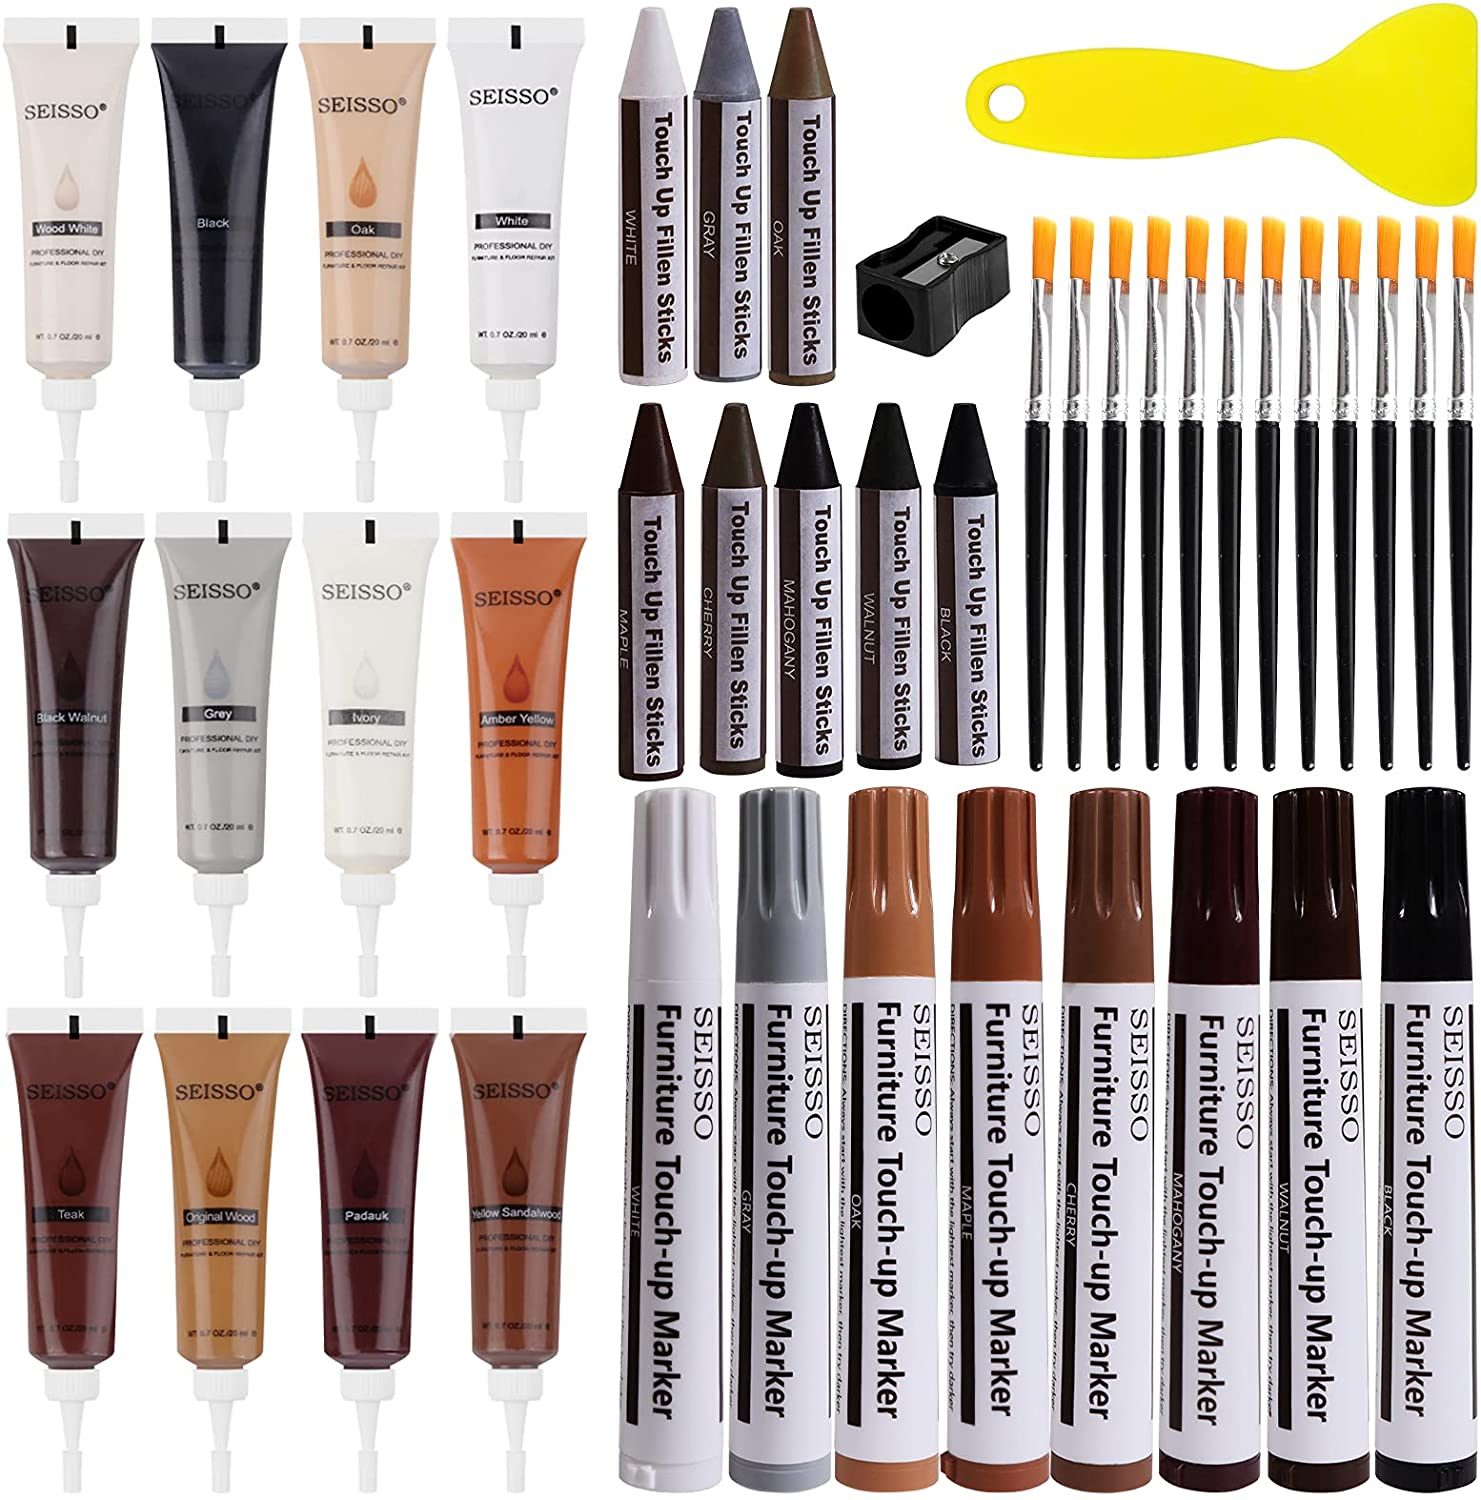 Wood Repair Kit for Furniture, 12 Colors Wood Filler with 8 Colors Wood Repair Markers and Wax Sticks Sharpener Kit Scratch Cover Surface Restore-Set of 42